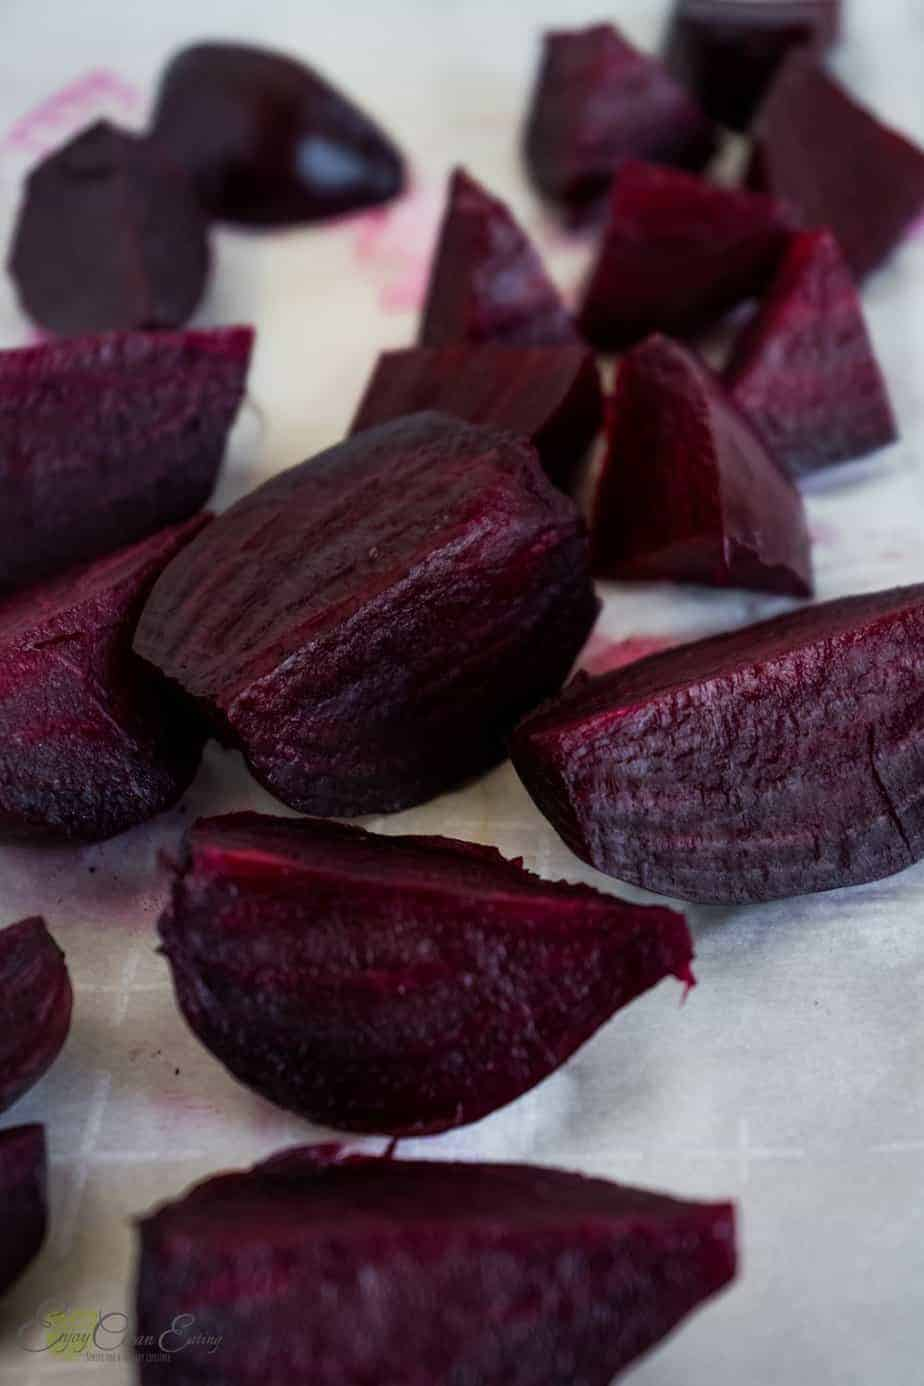 Steamed beets cut, spread on a cutting board